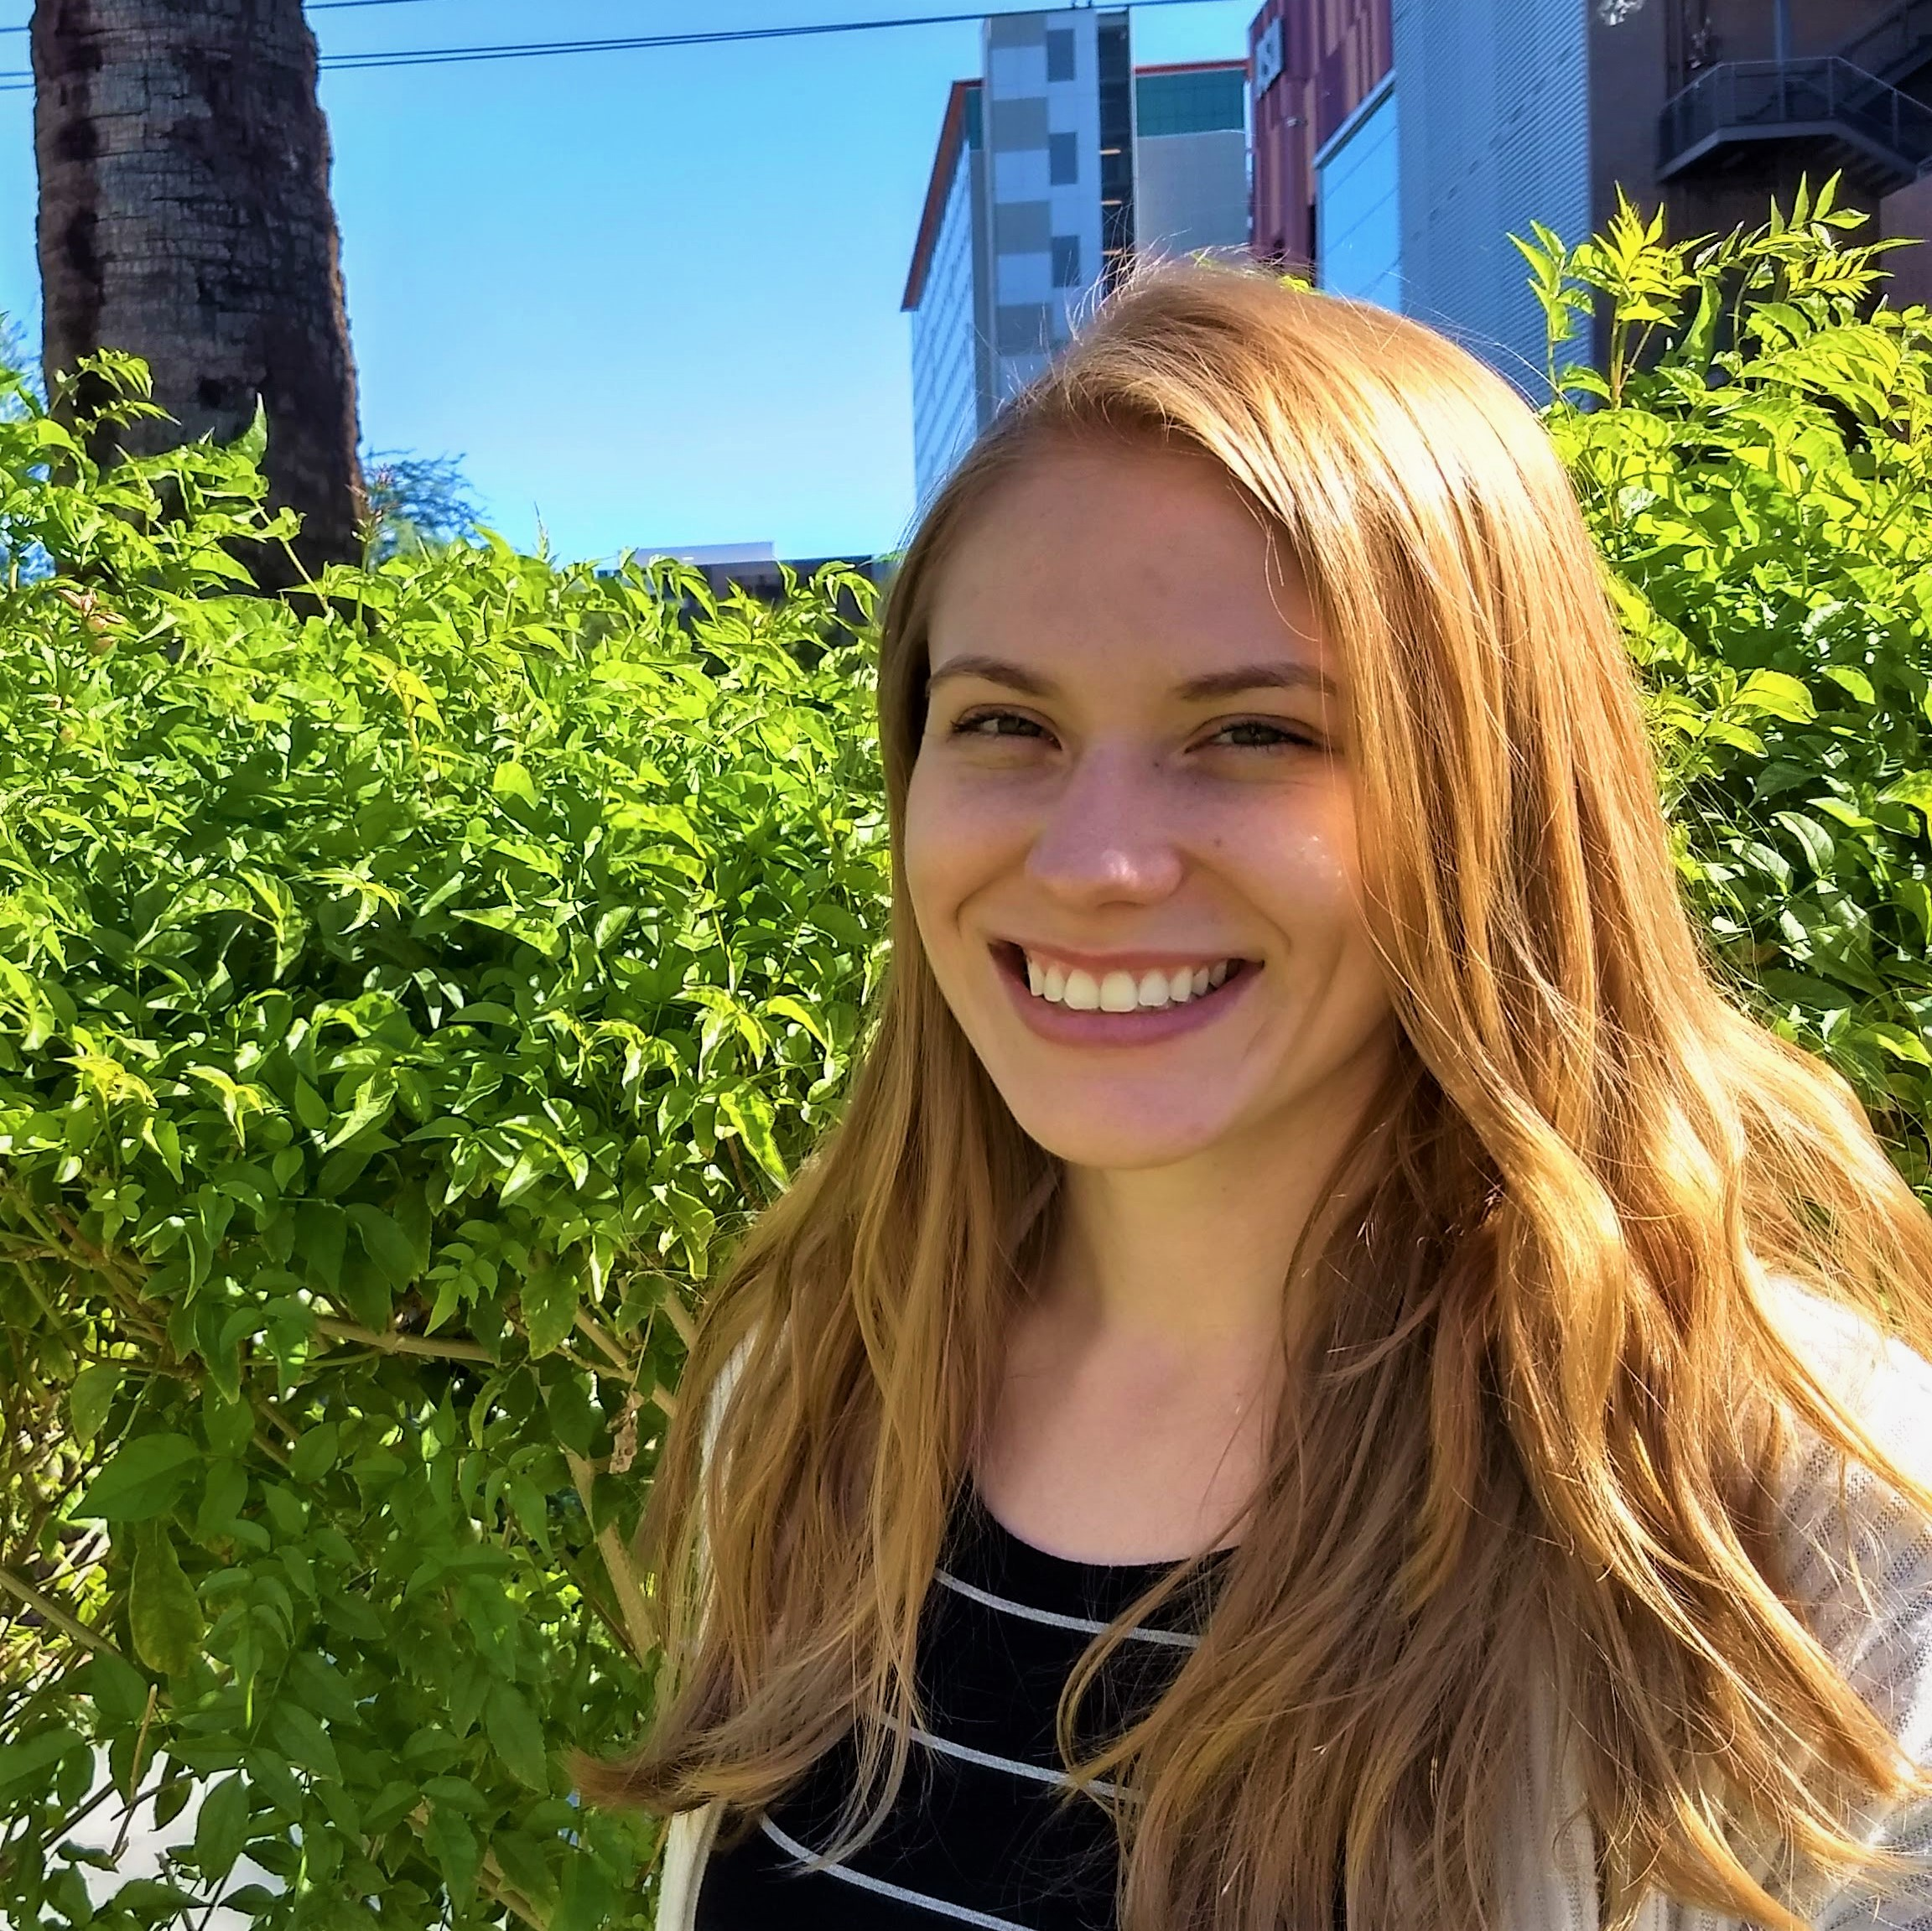 Elizabeth Hatch Mody   Research Specialist   Elizabeth joined OFY in August 2018 as the Research Specialist, supporting the team in data management and data-driven decision making. Elizabeth graduated from ASU with a master's degree in Social Work and a master's degree in Public Administration in 2018 in hopes of working alongside the community and local governments to build and support programs that are tailored to meet the needs of diverse migrant populations. As a doctoral student in the ASU School of Social Work, Elizabeth studies global social work, cultural identity formation, and equity in access to resources and opportunities for migrant people. Along with OFY's partnering agencies, Elizabeth aims to help the diverse youth in Arizona enter gainful and meaningful education and employment pathways.    Elizabeth.Hatch@asu.edu      (602) 935-0689